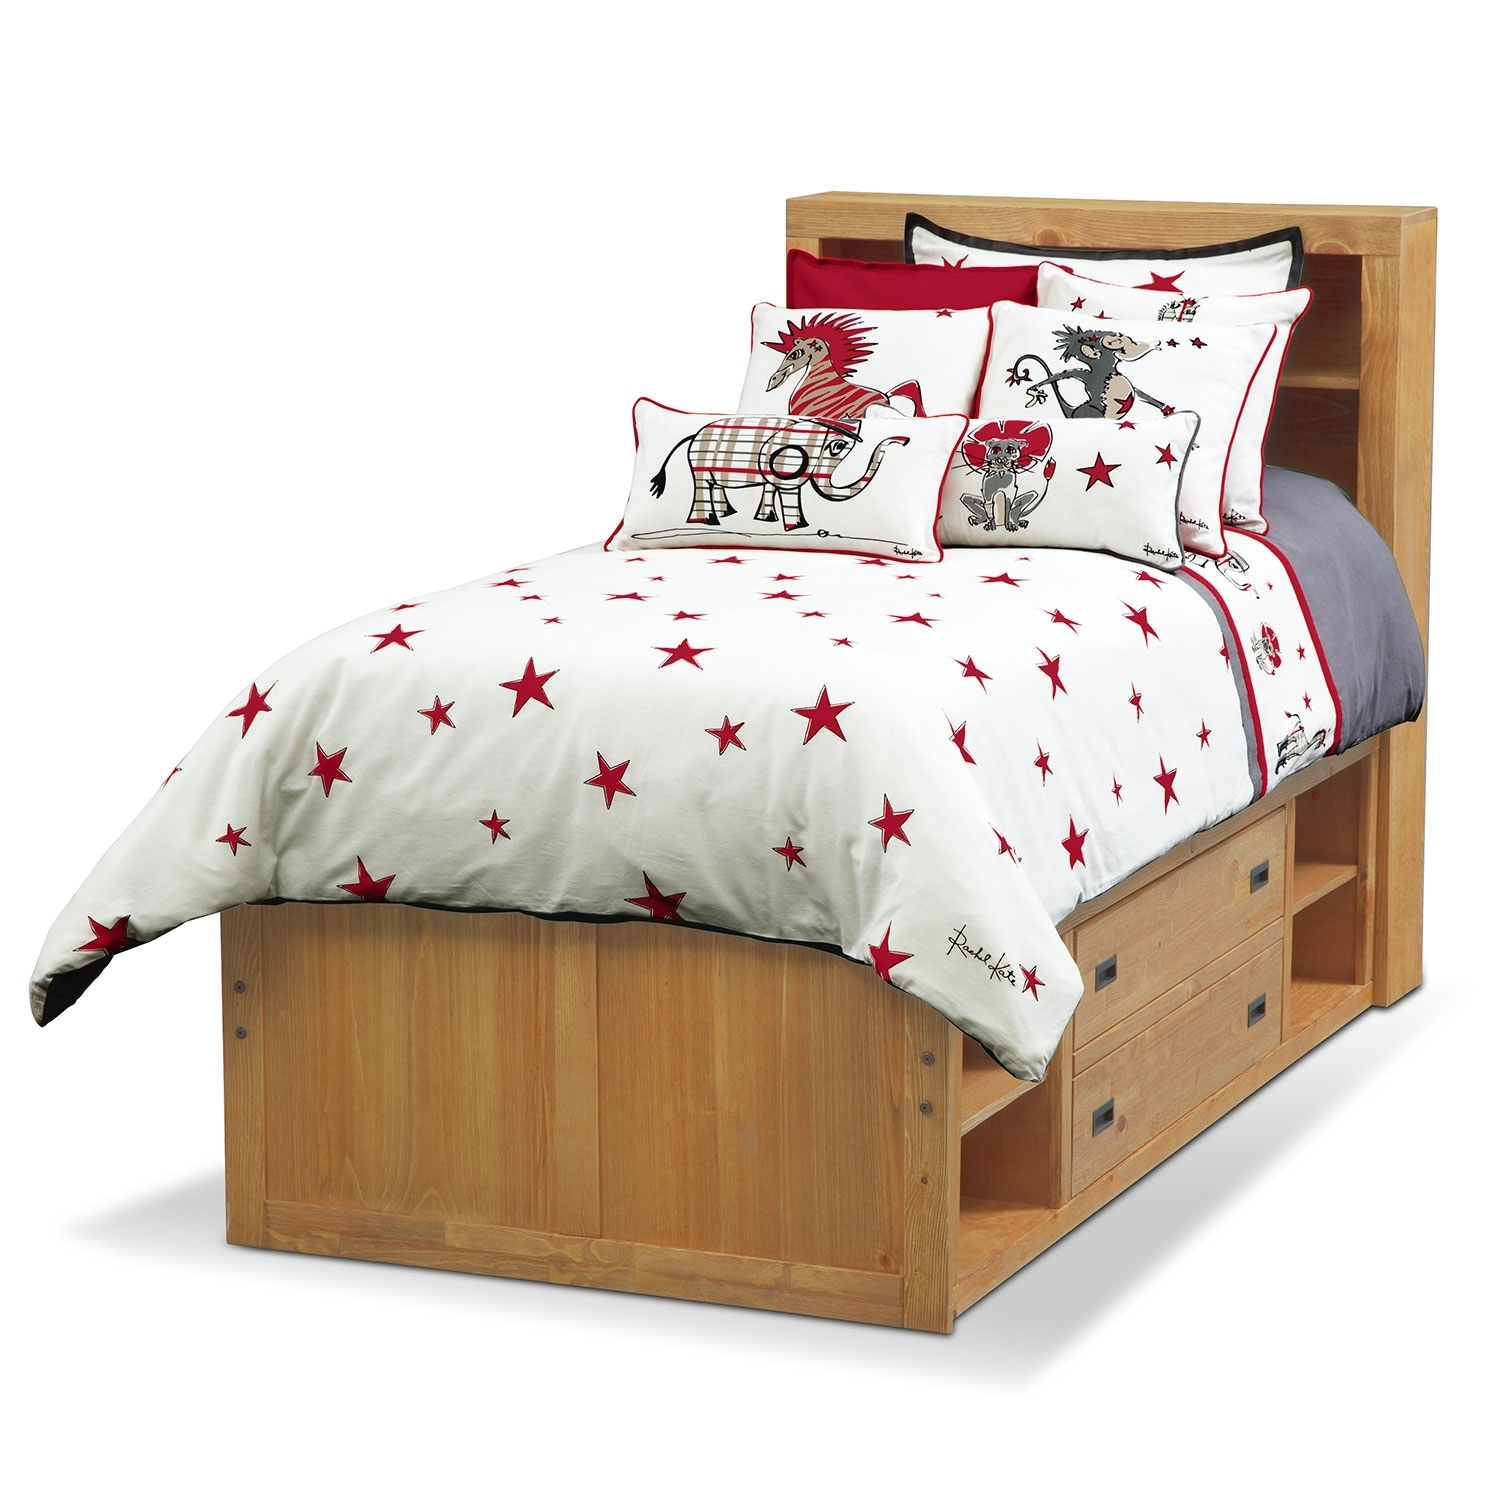 Punker Boys Twin Bedding Set